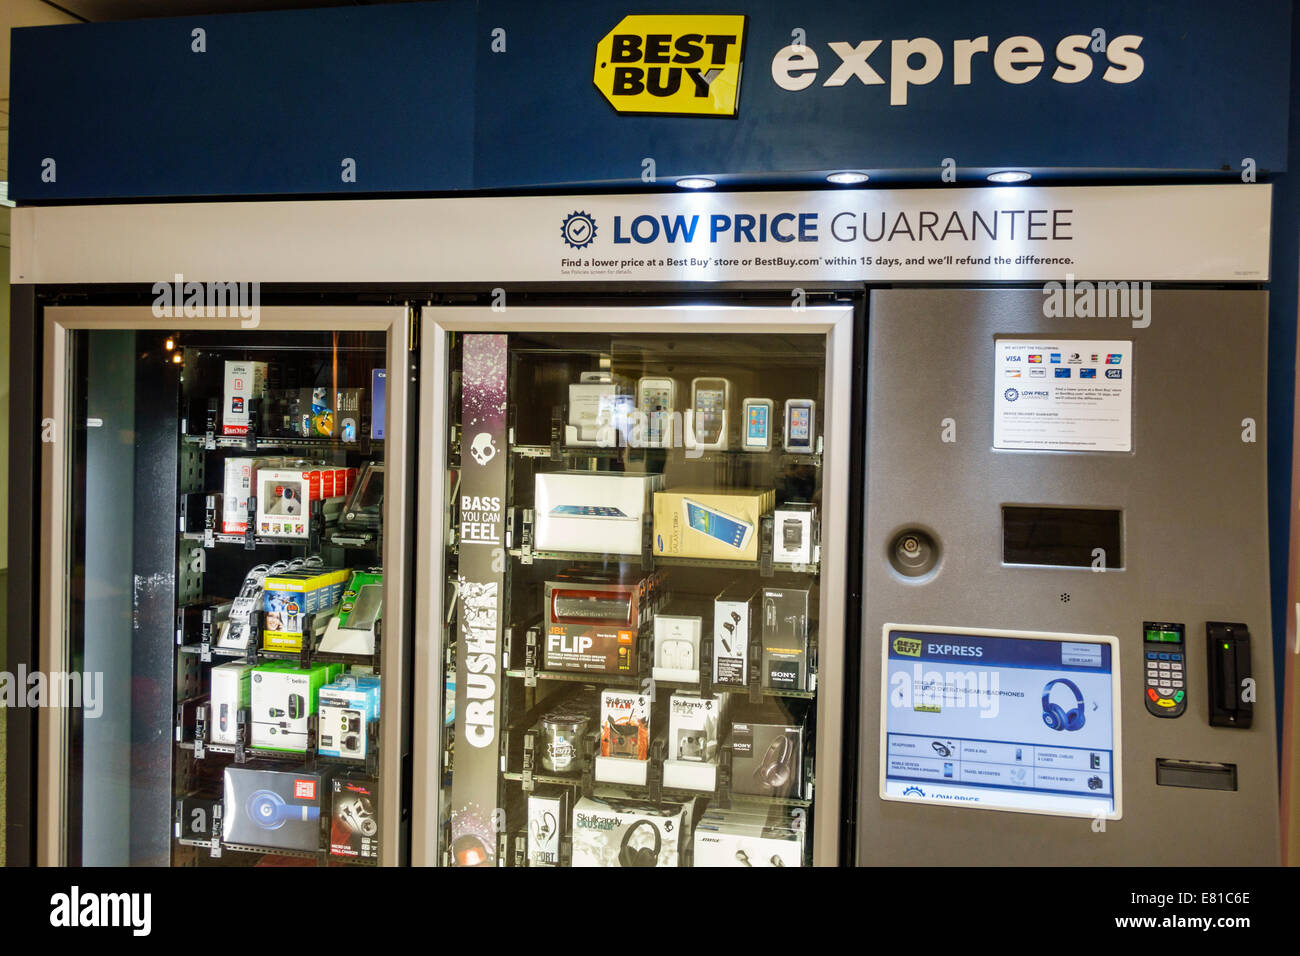 Best Buy Express High Resolution Stock Photography And Images Alamy